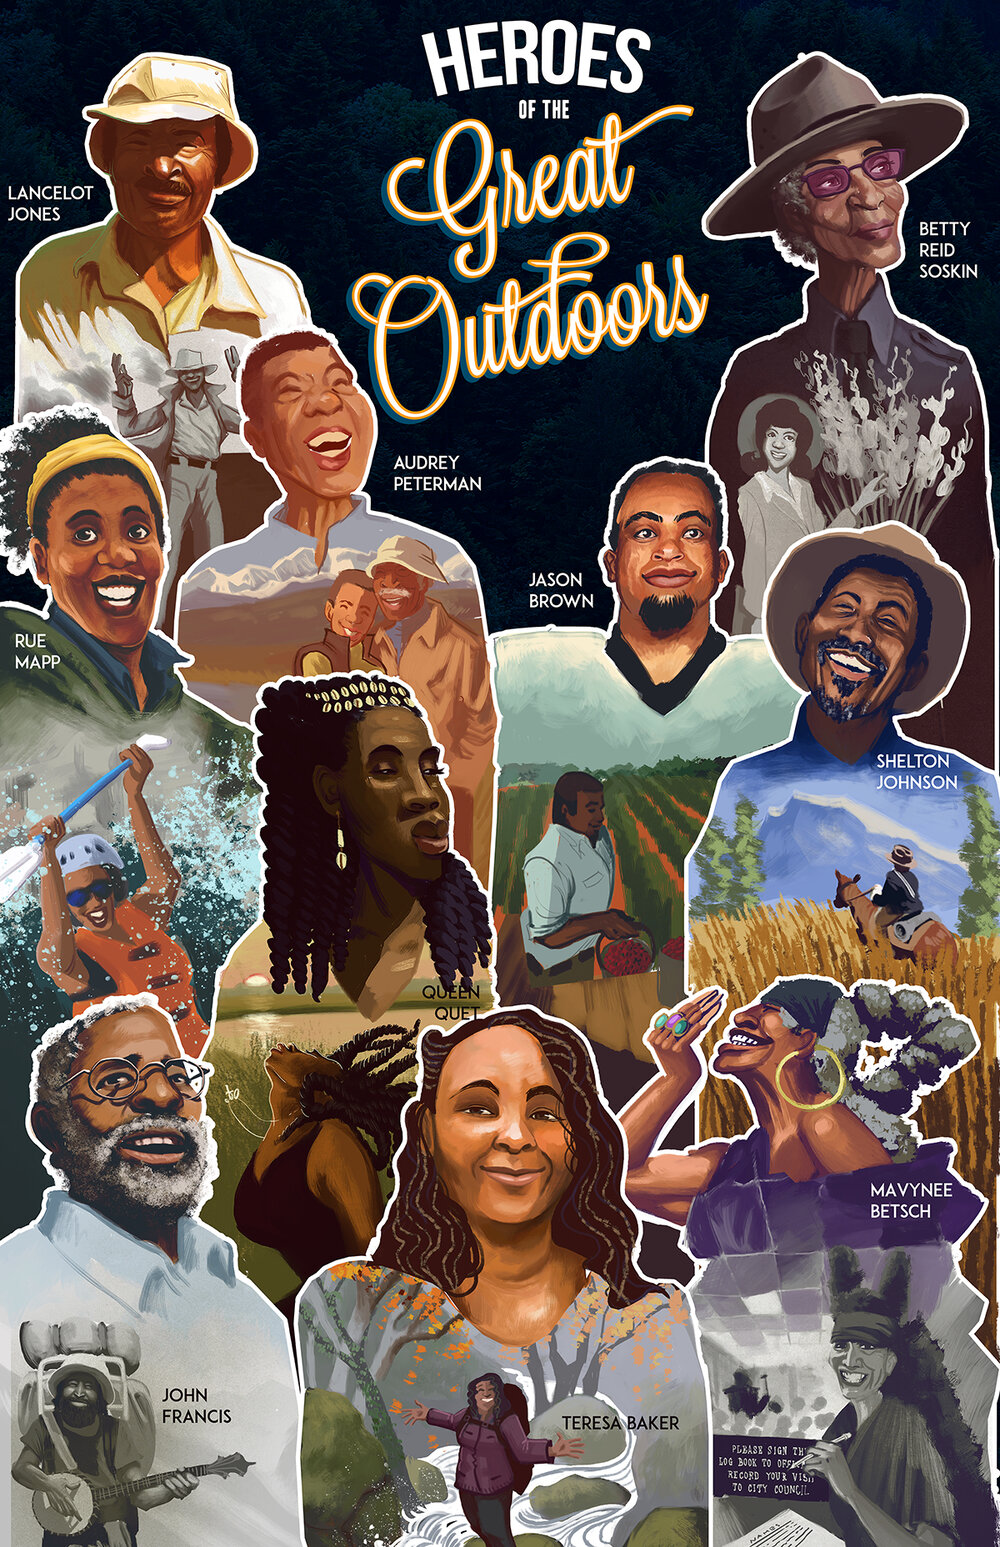 Heroes of the Great Outdoors